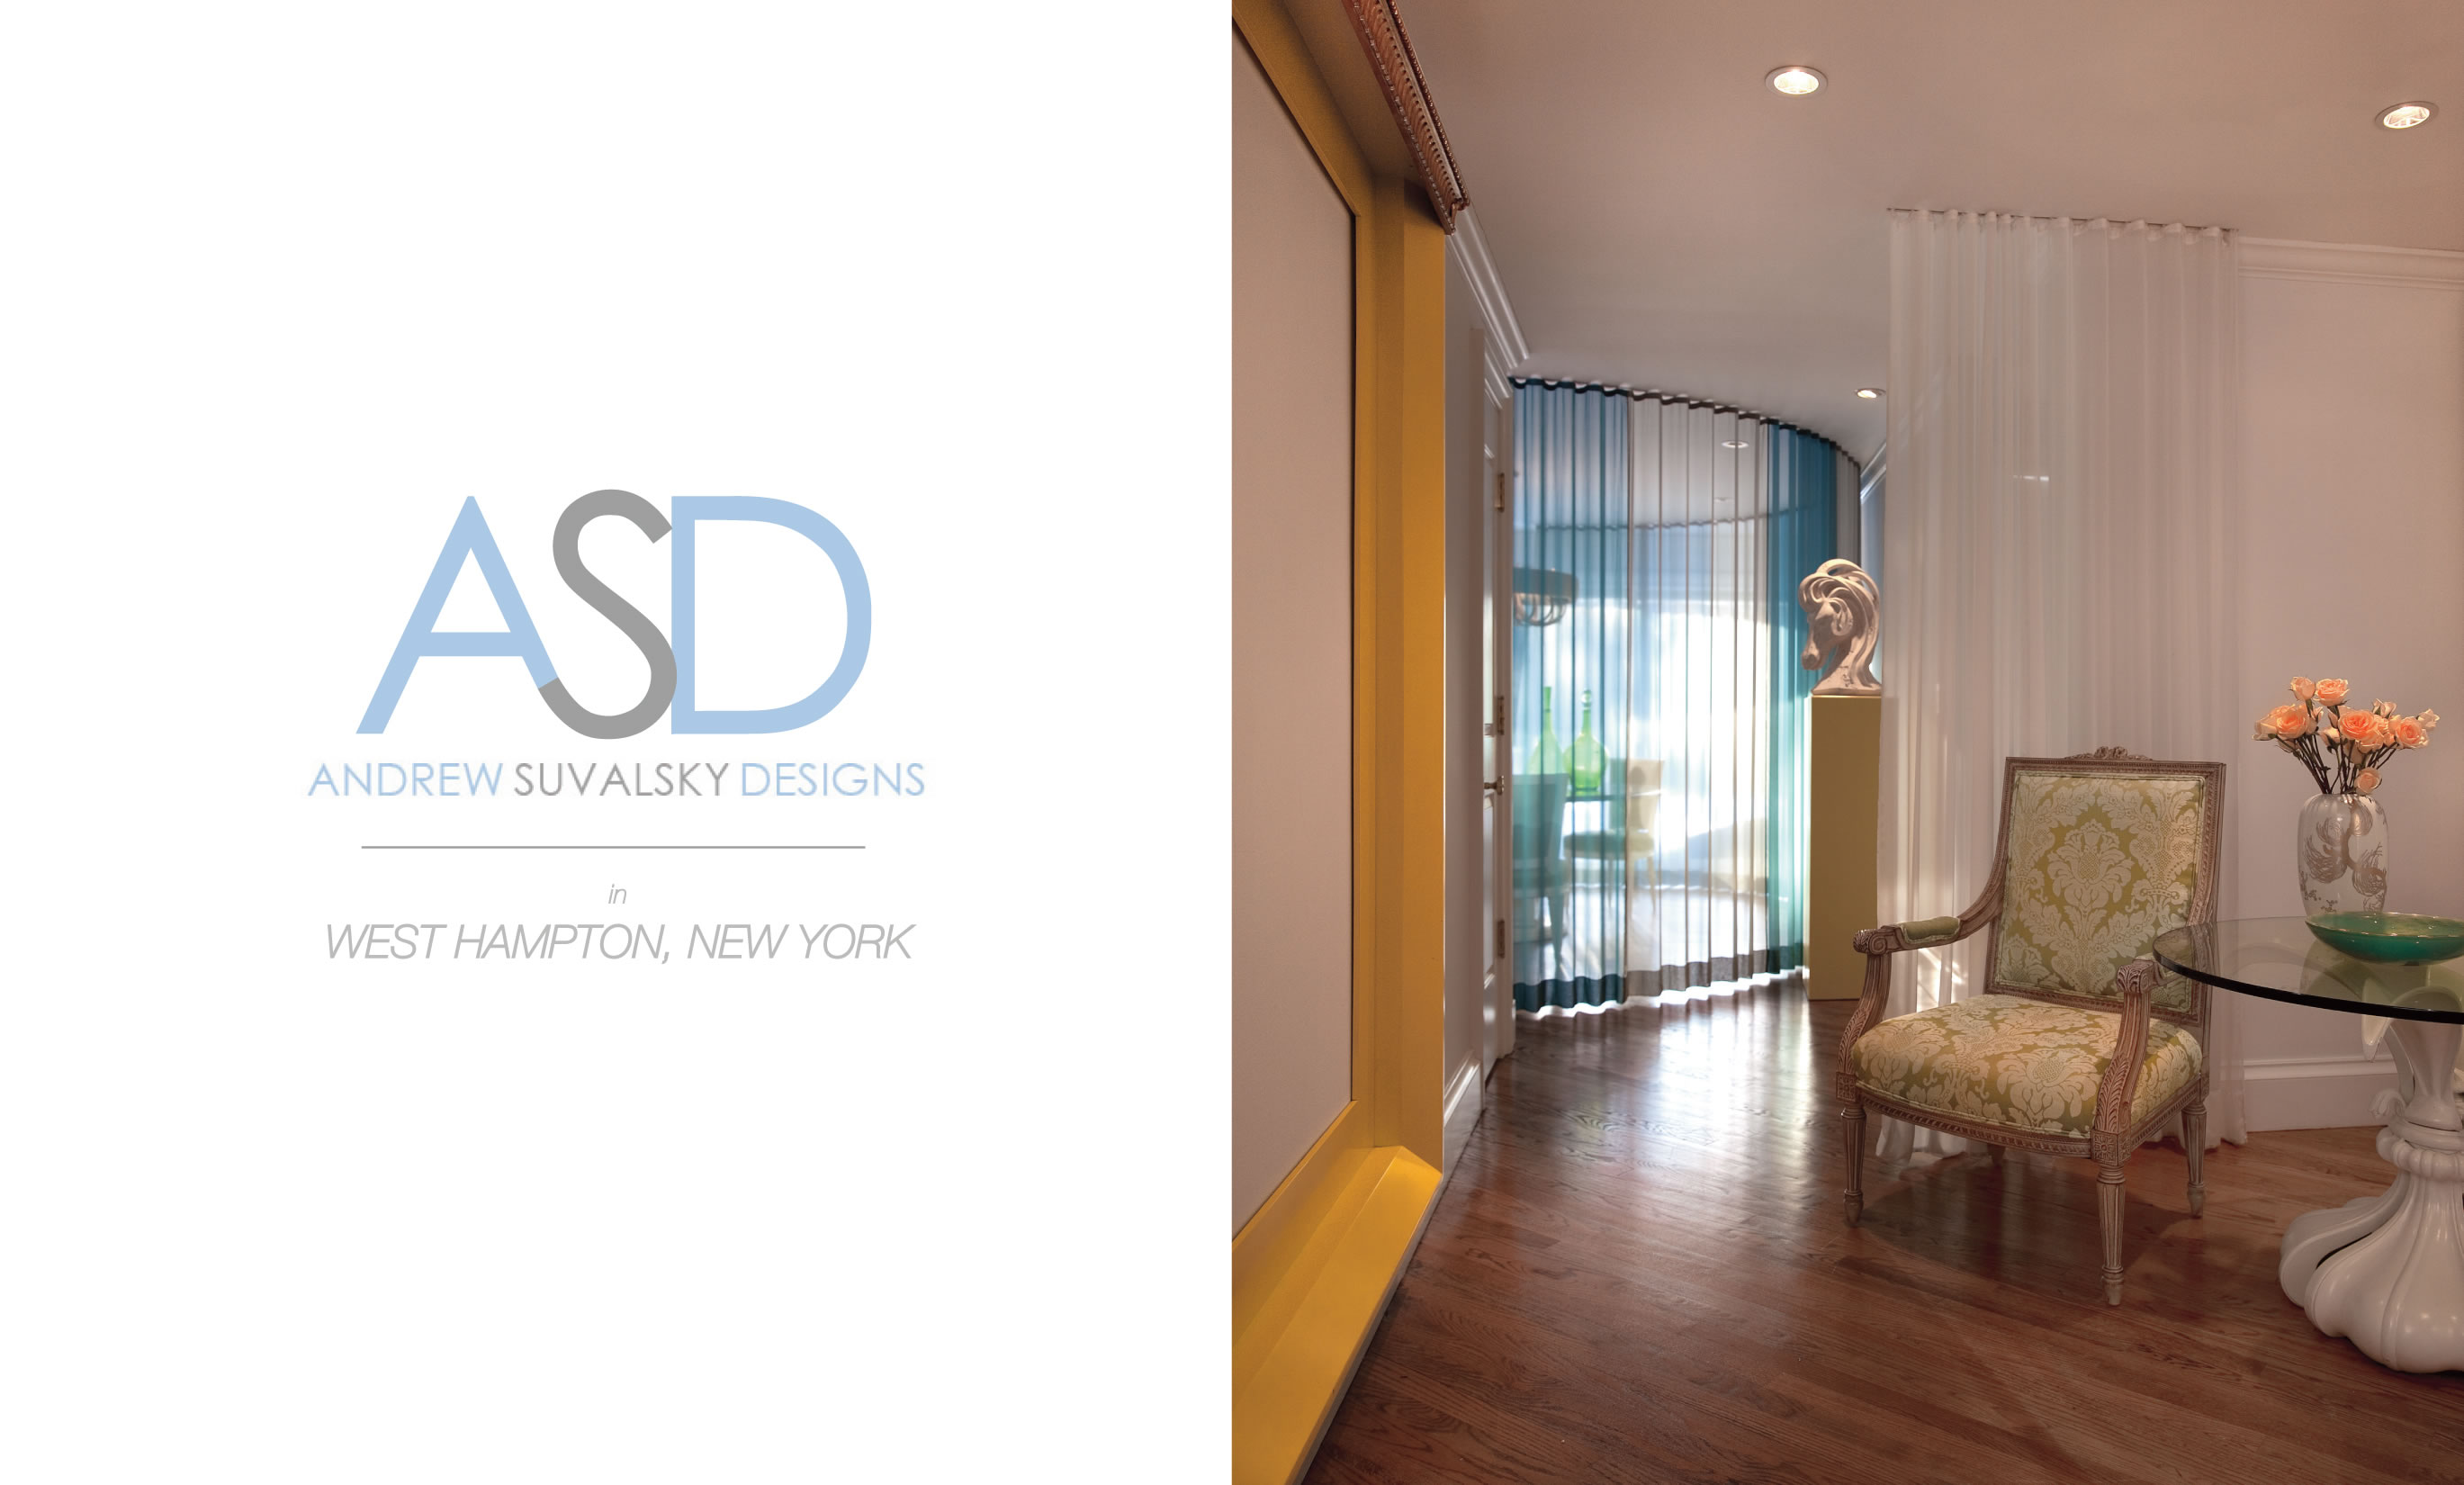 ASD-West Hampton-1